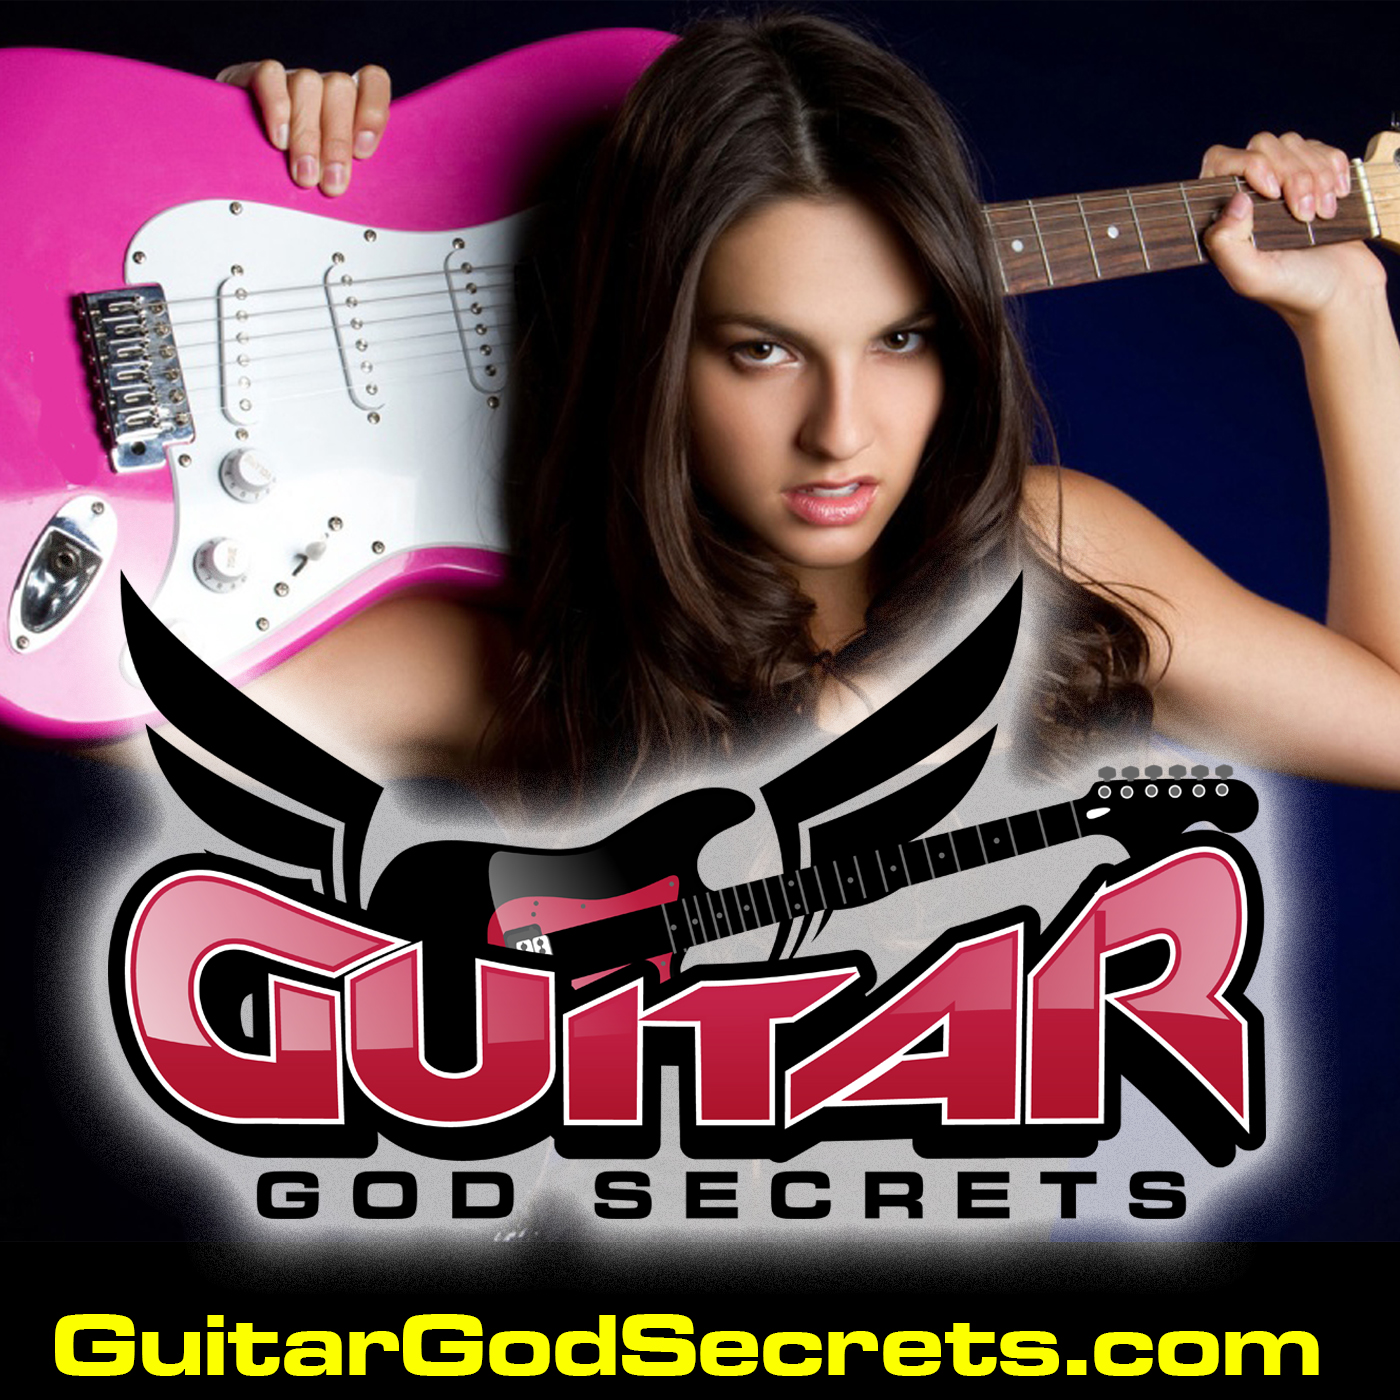 Guitar God Secrets - How To Play Guitar